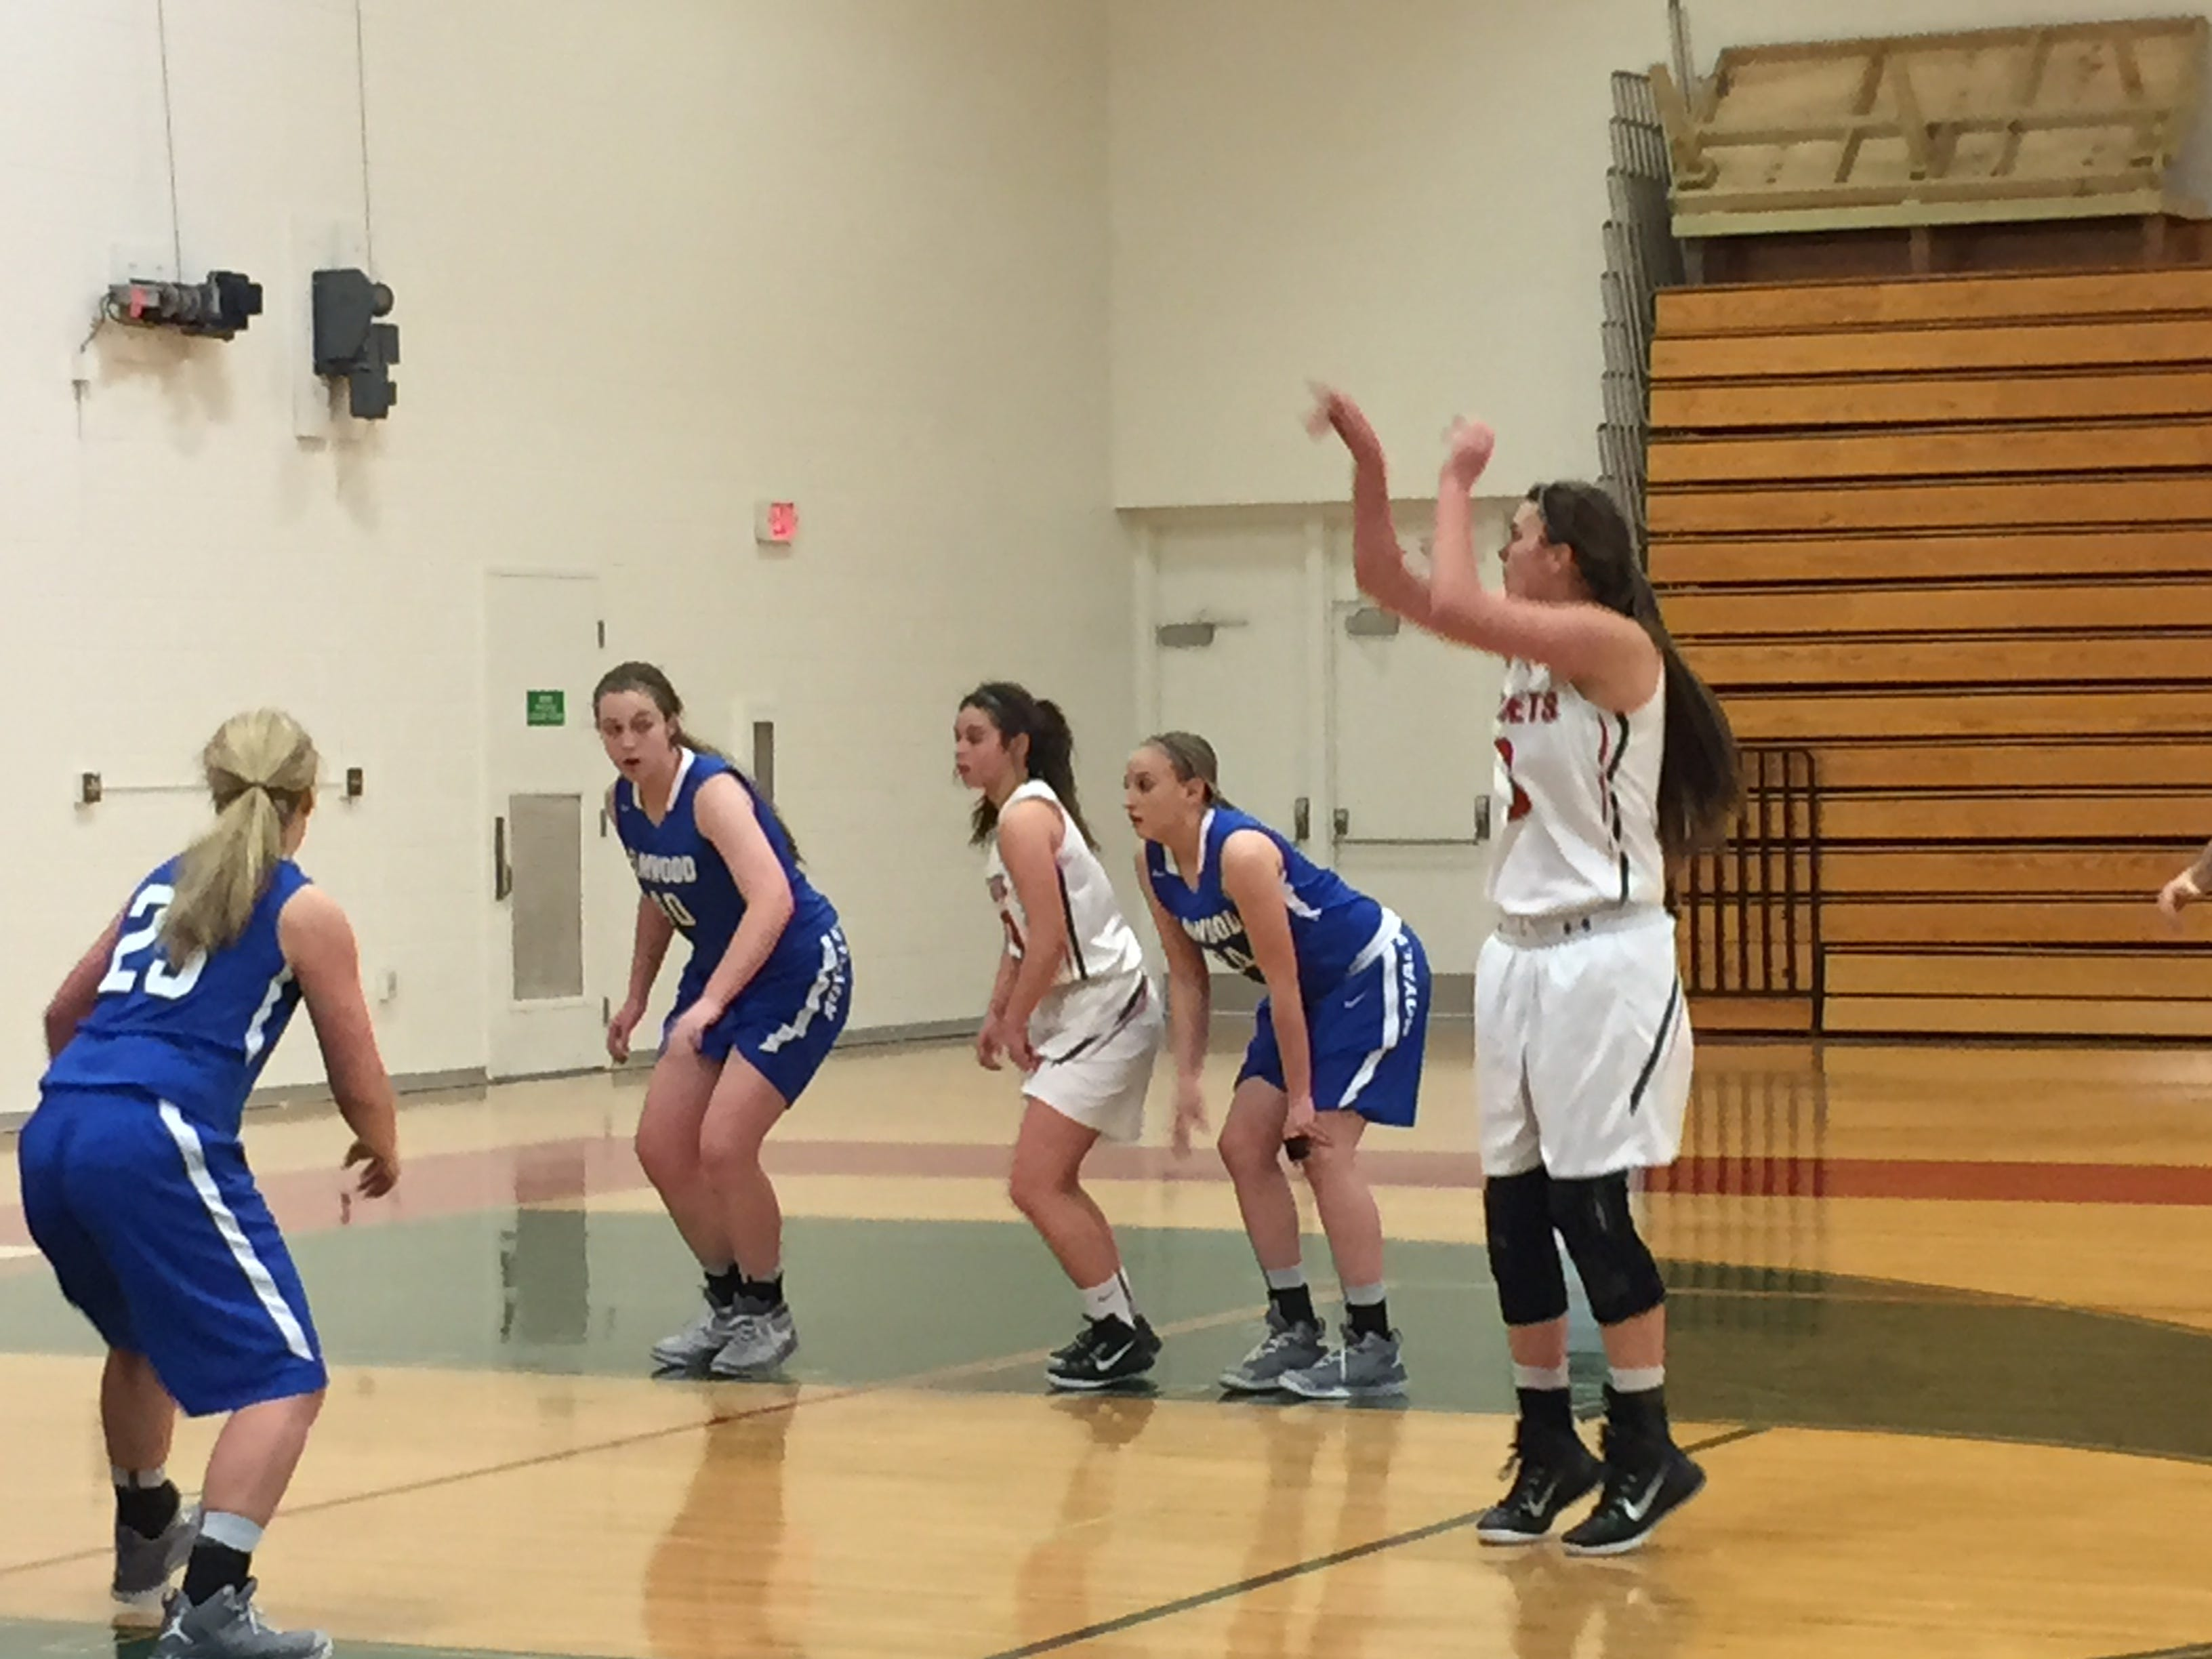 Andrea Cecil shoots a free throw Tuesday for her 37th point to surpass her own single-game program scoring record in Oak Harbor's victory over Elmwood.